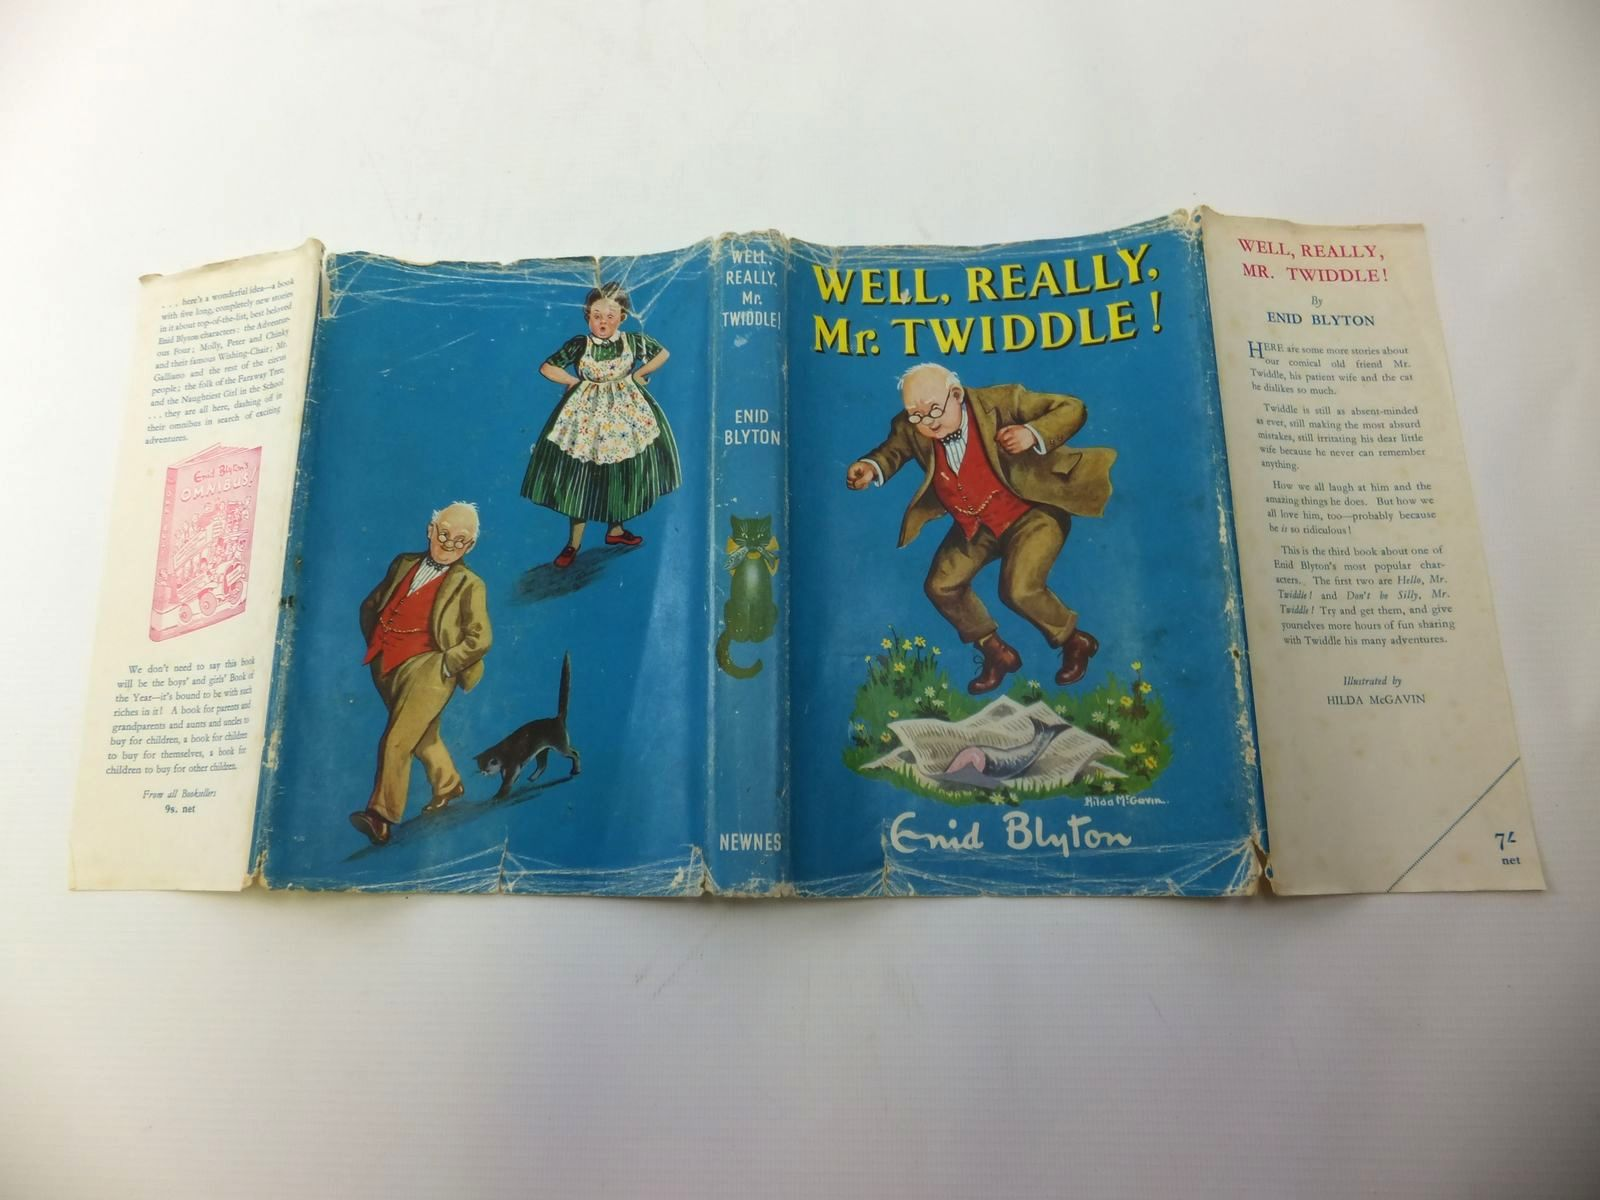 Photo of WELL, REALLY, MR. TWIDDLE! written by Blyton, Enid illustrated by McGavin, Hilda published by George Newnes Limited (STOCK CODE: 1811933)  for sale by Stella & Rose's Books